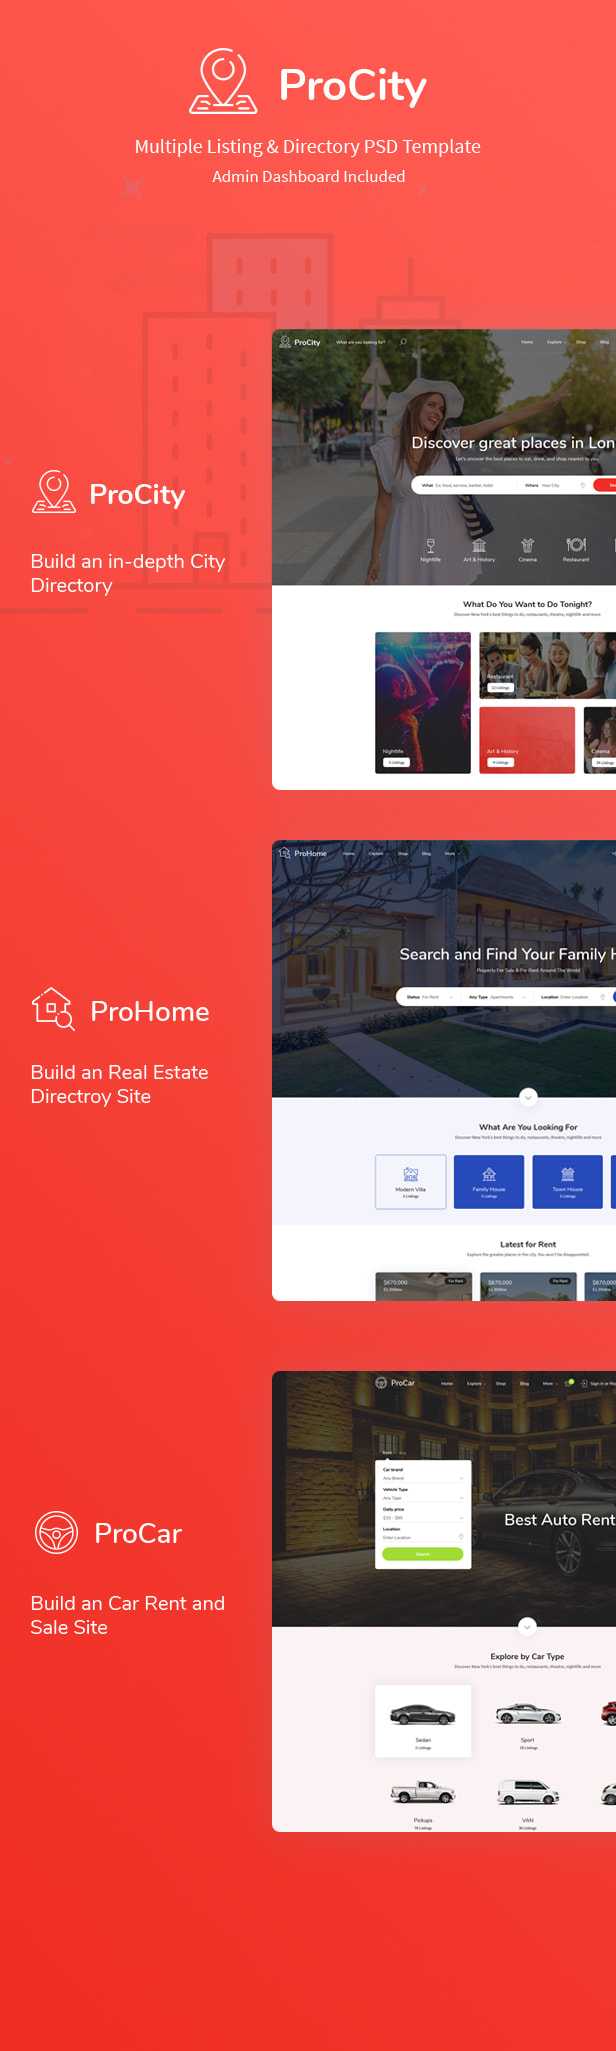 Procity - Multiple Listing & Directory PSD Template - 1